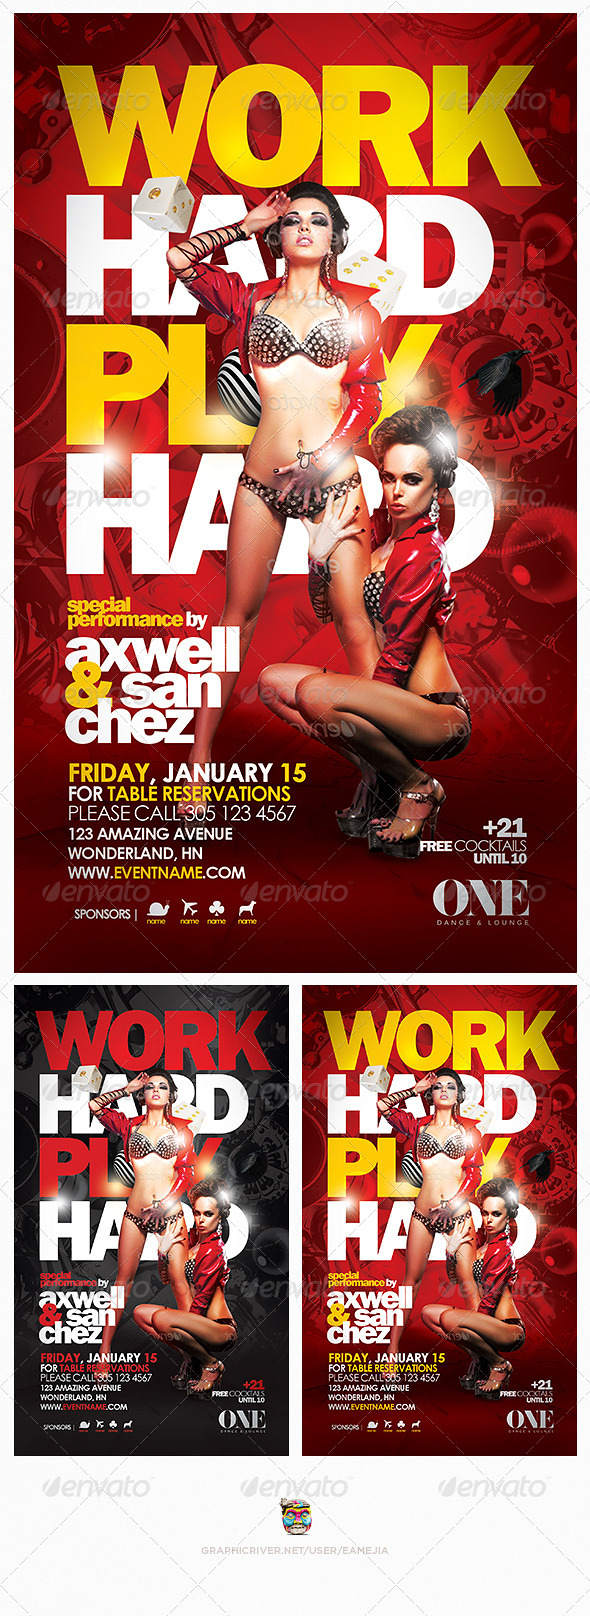 Work Hard Play Hard Flyer Template - Events Flyers